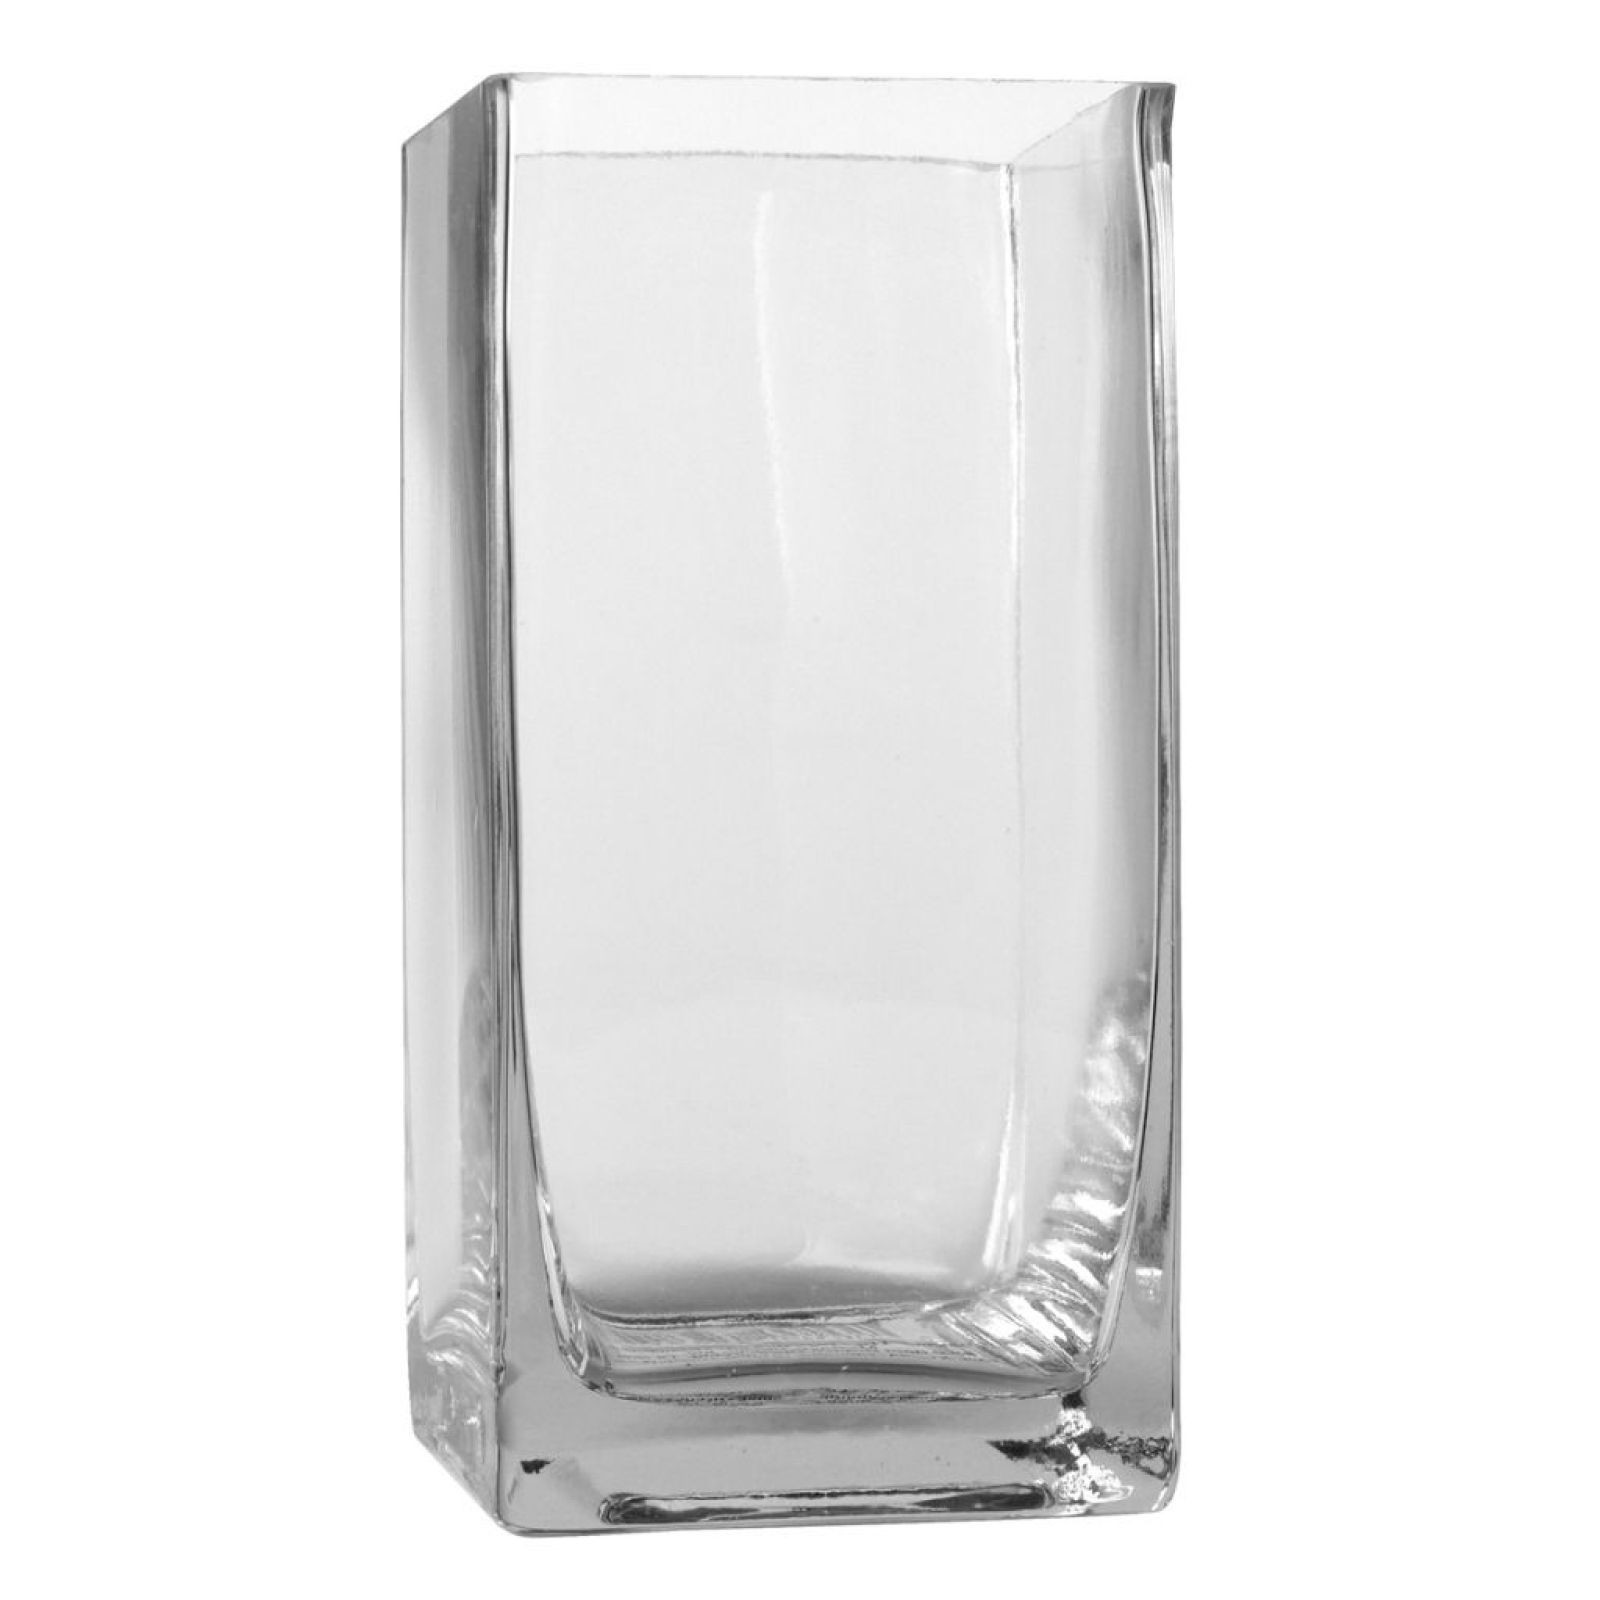 30 inch tall glass vases of ashland tall cube glass vase cube and glass intended for ashlanda tall cube glass vase 6